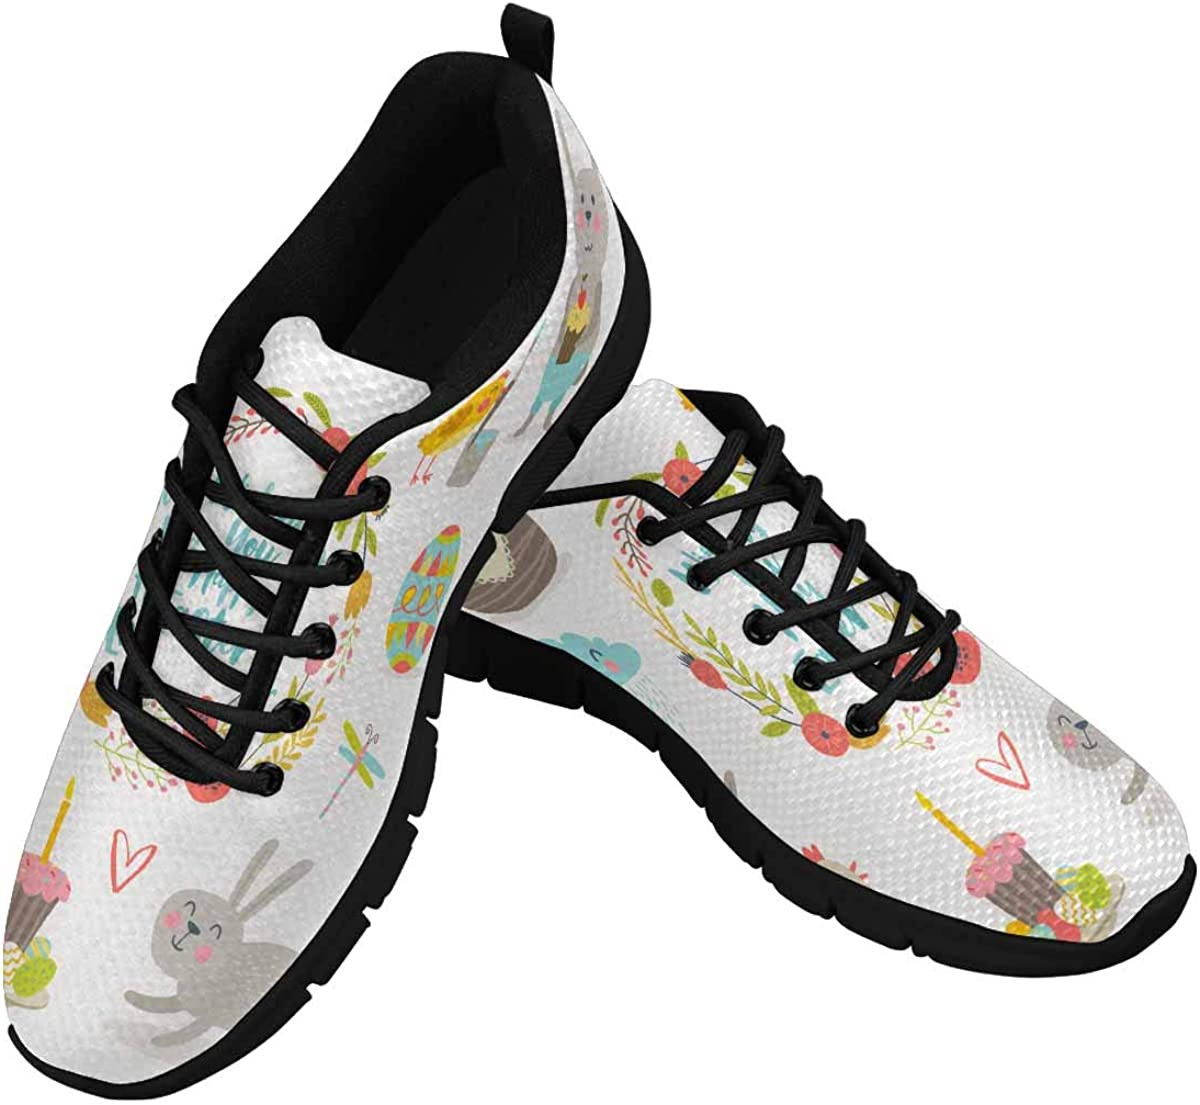 INTERESTPRINT Easter Bunny, Chickens and Flowers Women's Walking Shoes Lightweight Casual Running Sneakers